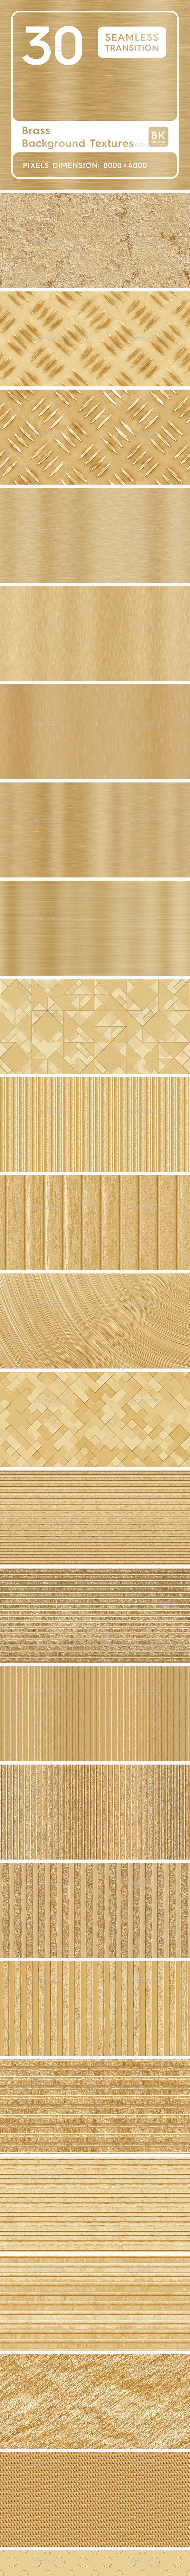 30 Brass Background Texture - 3DOcean Item for Sale